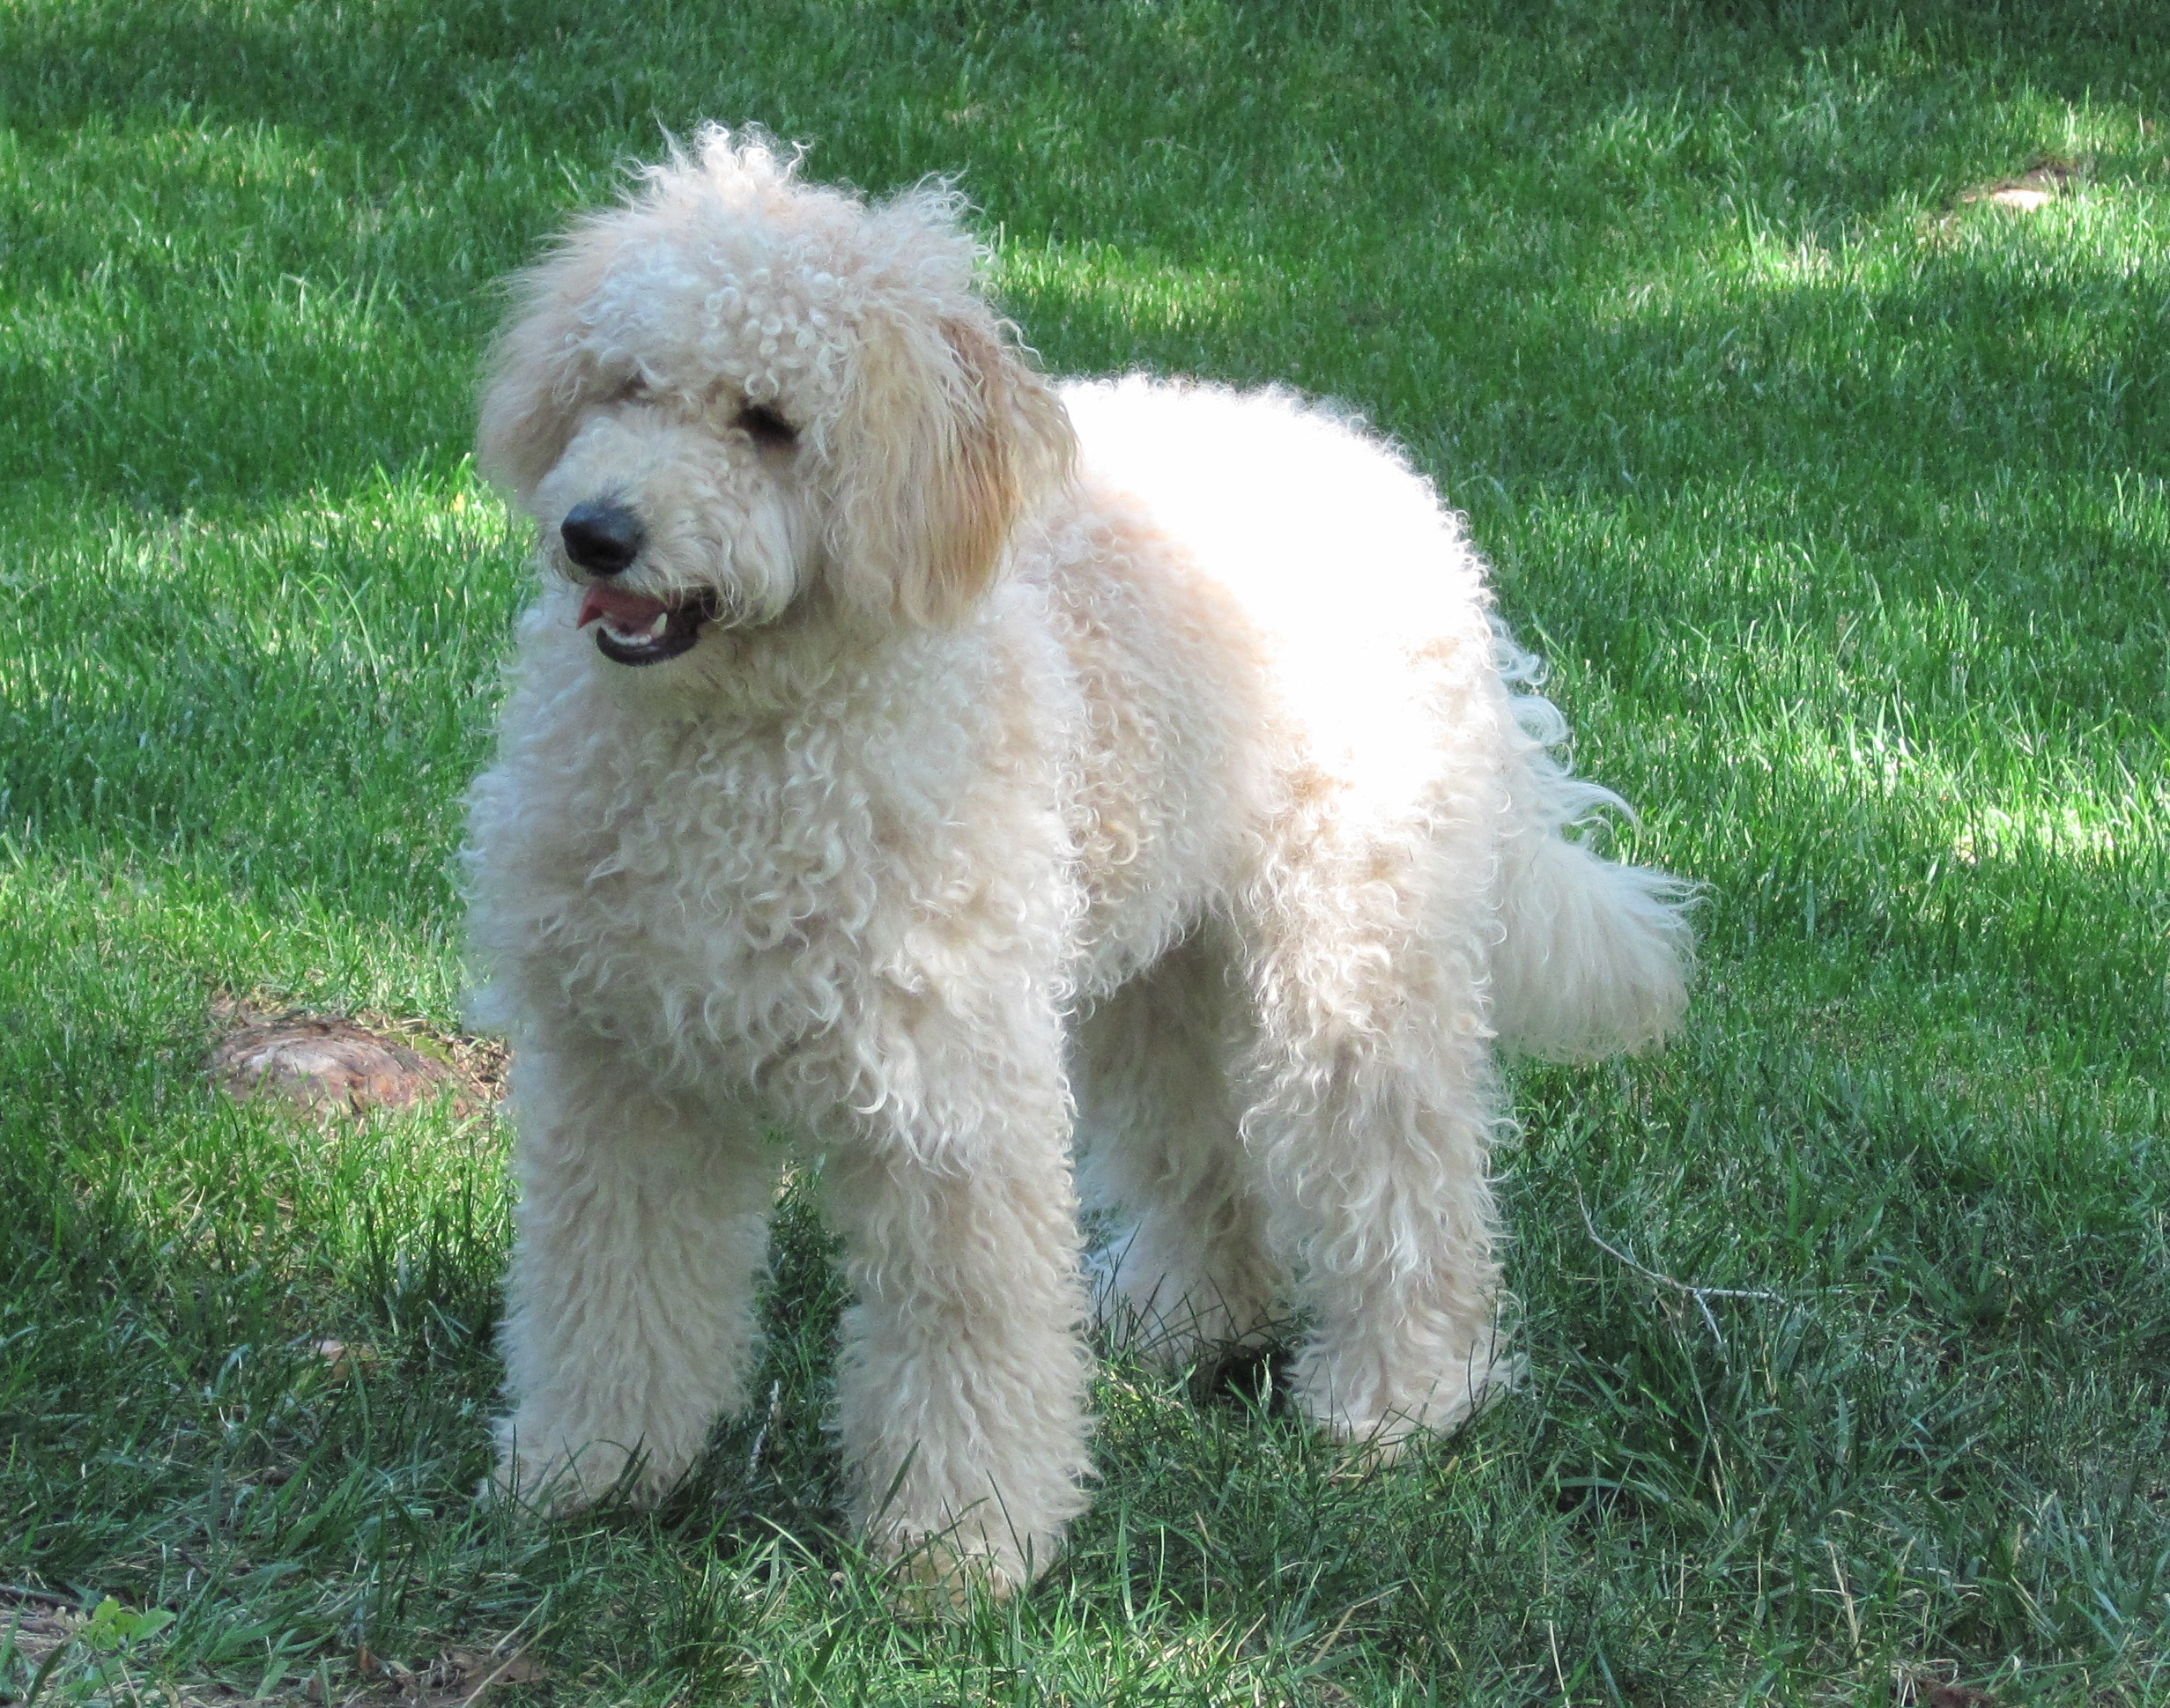 An 11-month-old female goldendoodle.